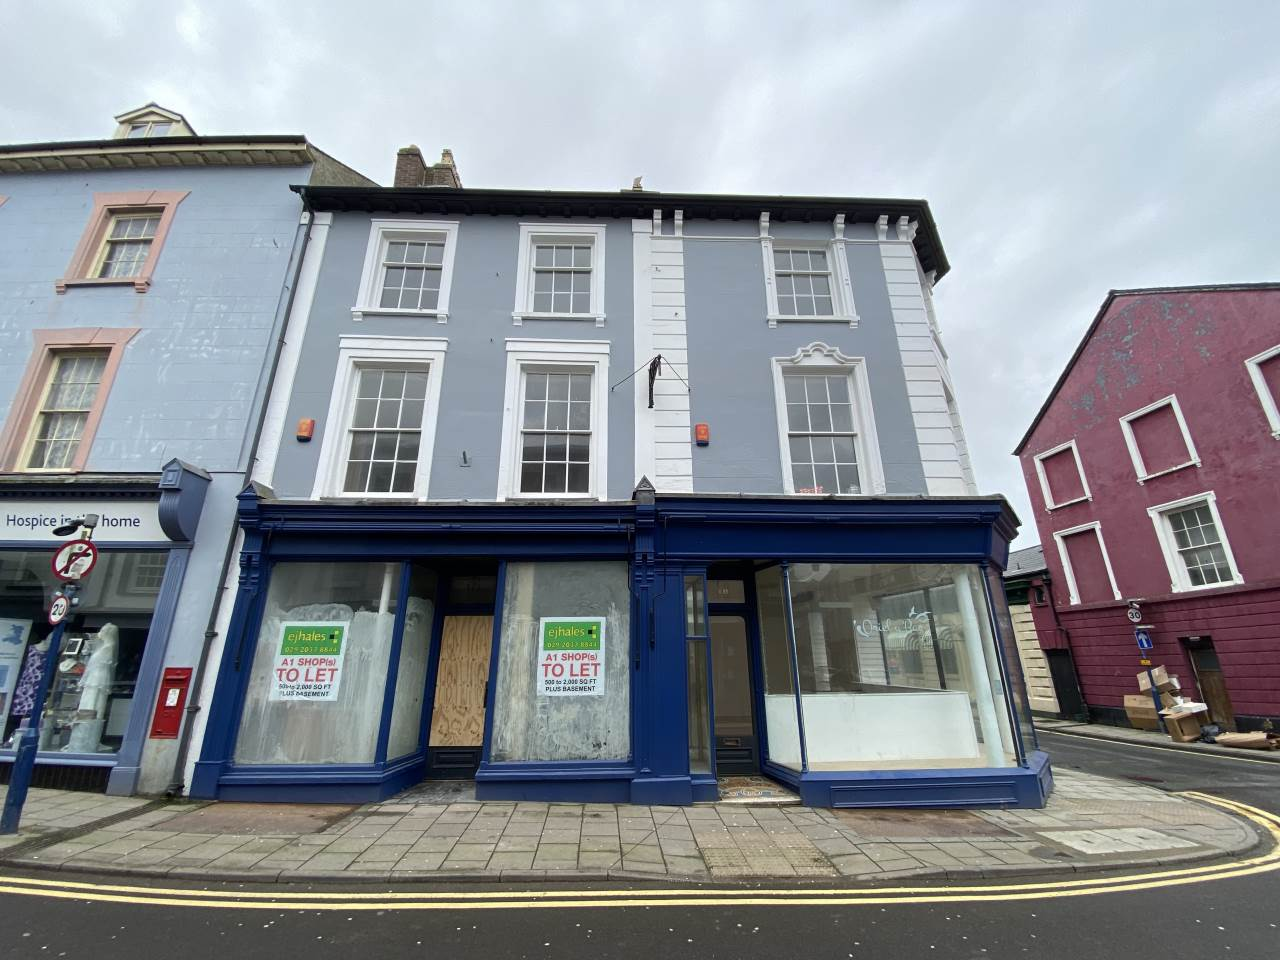 Commercial property to rent in Aberystwyth, Ceredigion 0